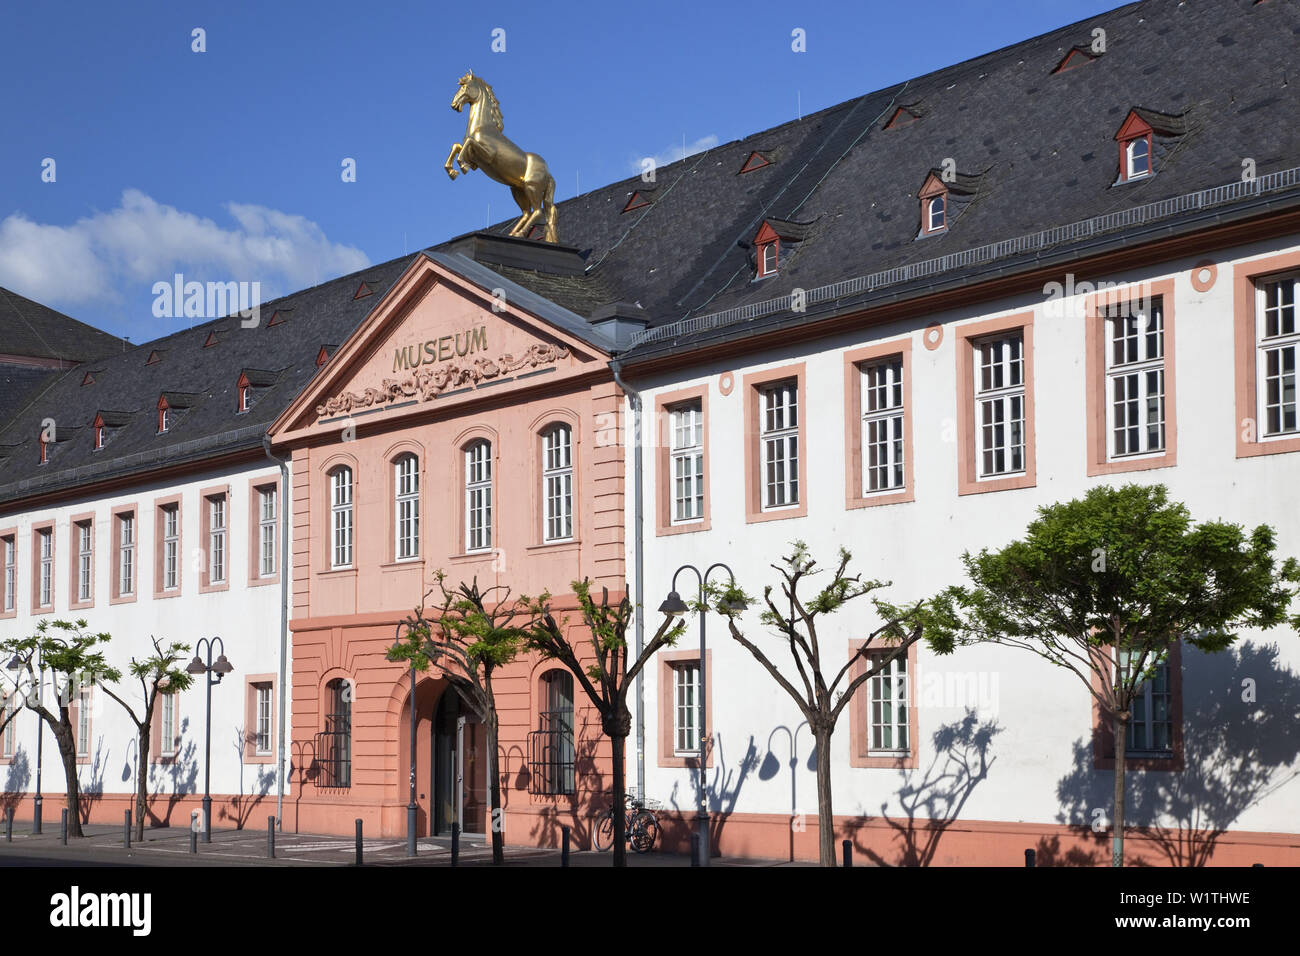 Entrance of the State Museum Mainz in the electoral stables, Mainz, Rhineland-Palatinate, Germany, Europe - Stock Image